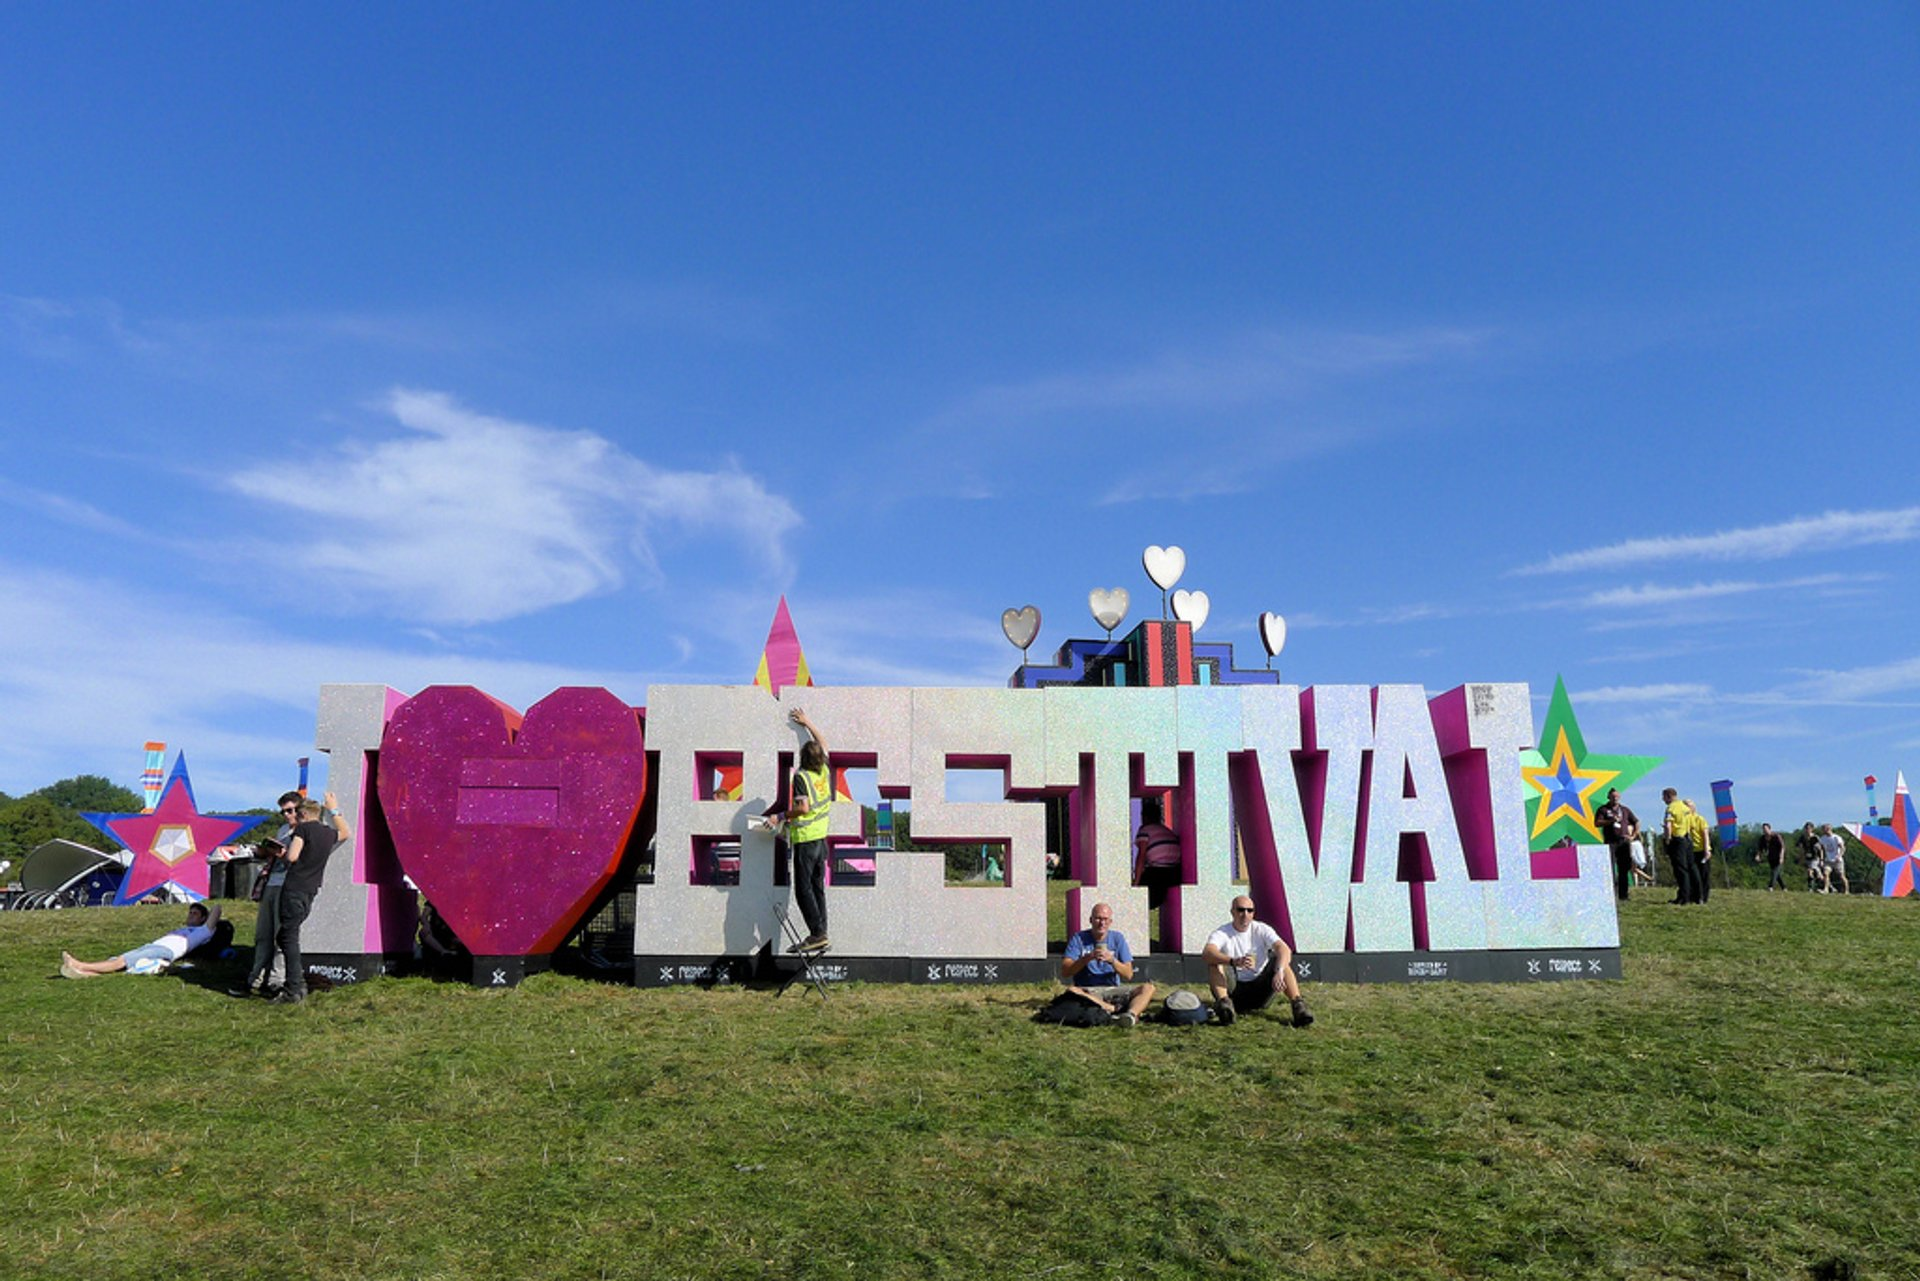 Best time for Bestival Toronto in Toronto 2020